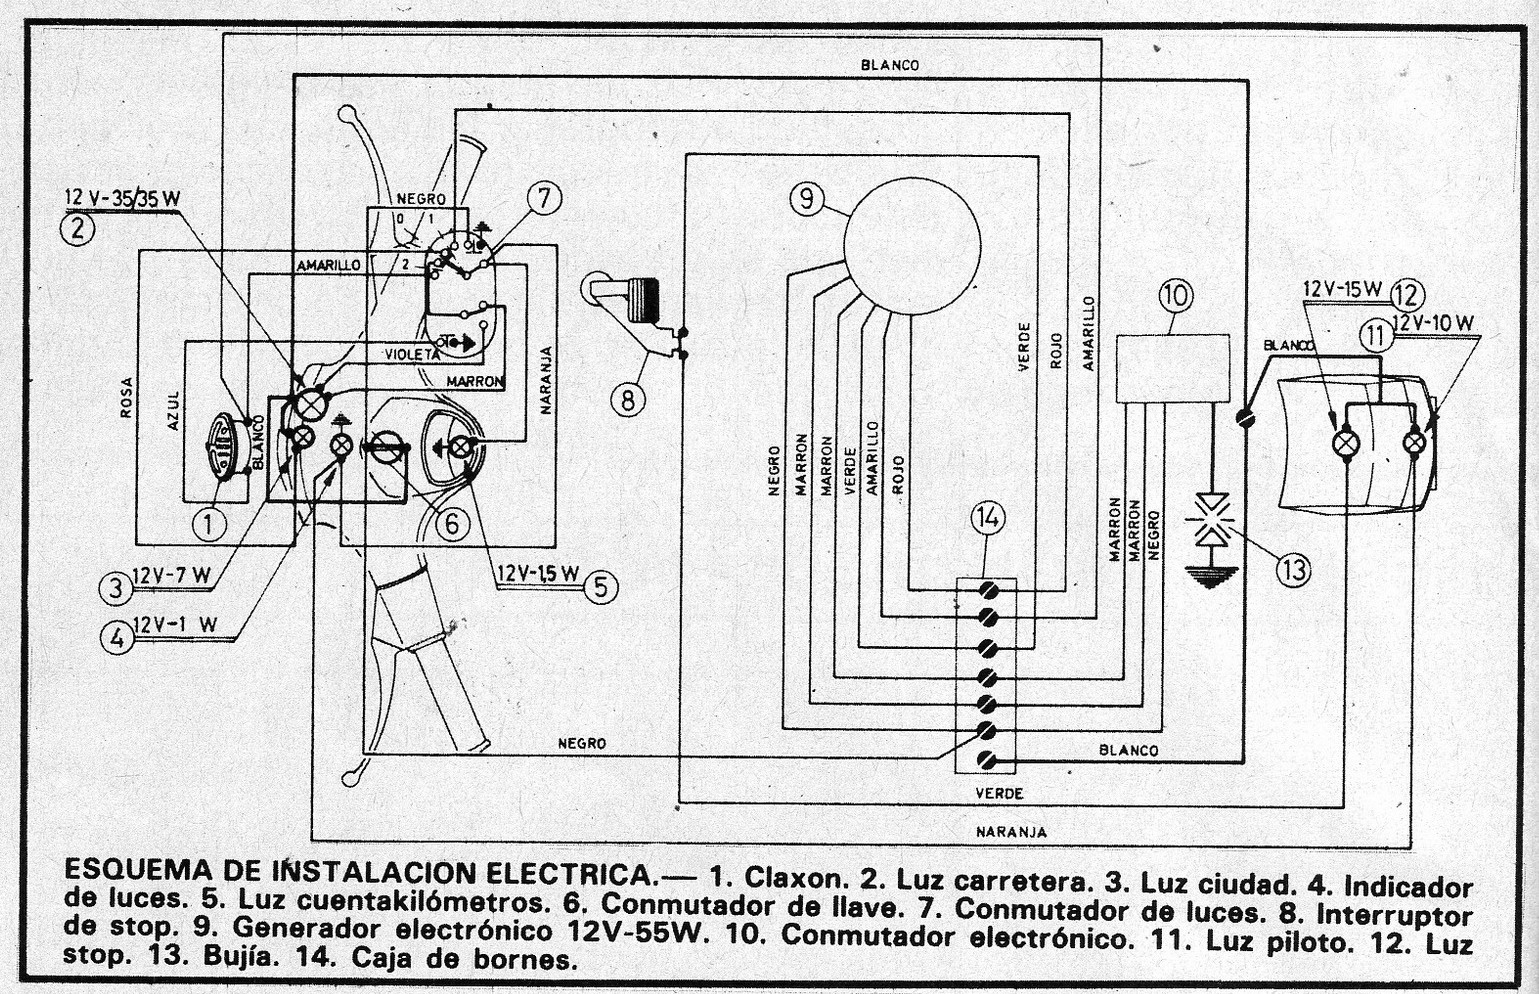 alfa 156 wiring diagram er for library management system romeo auto fuse box